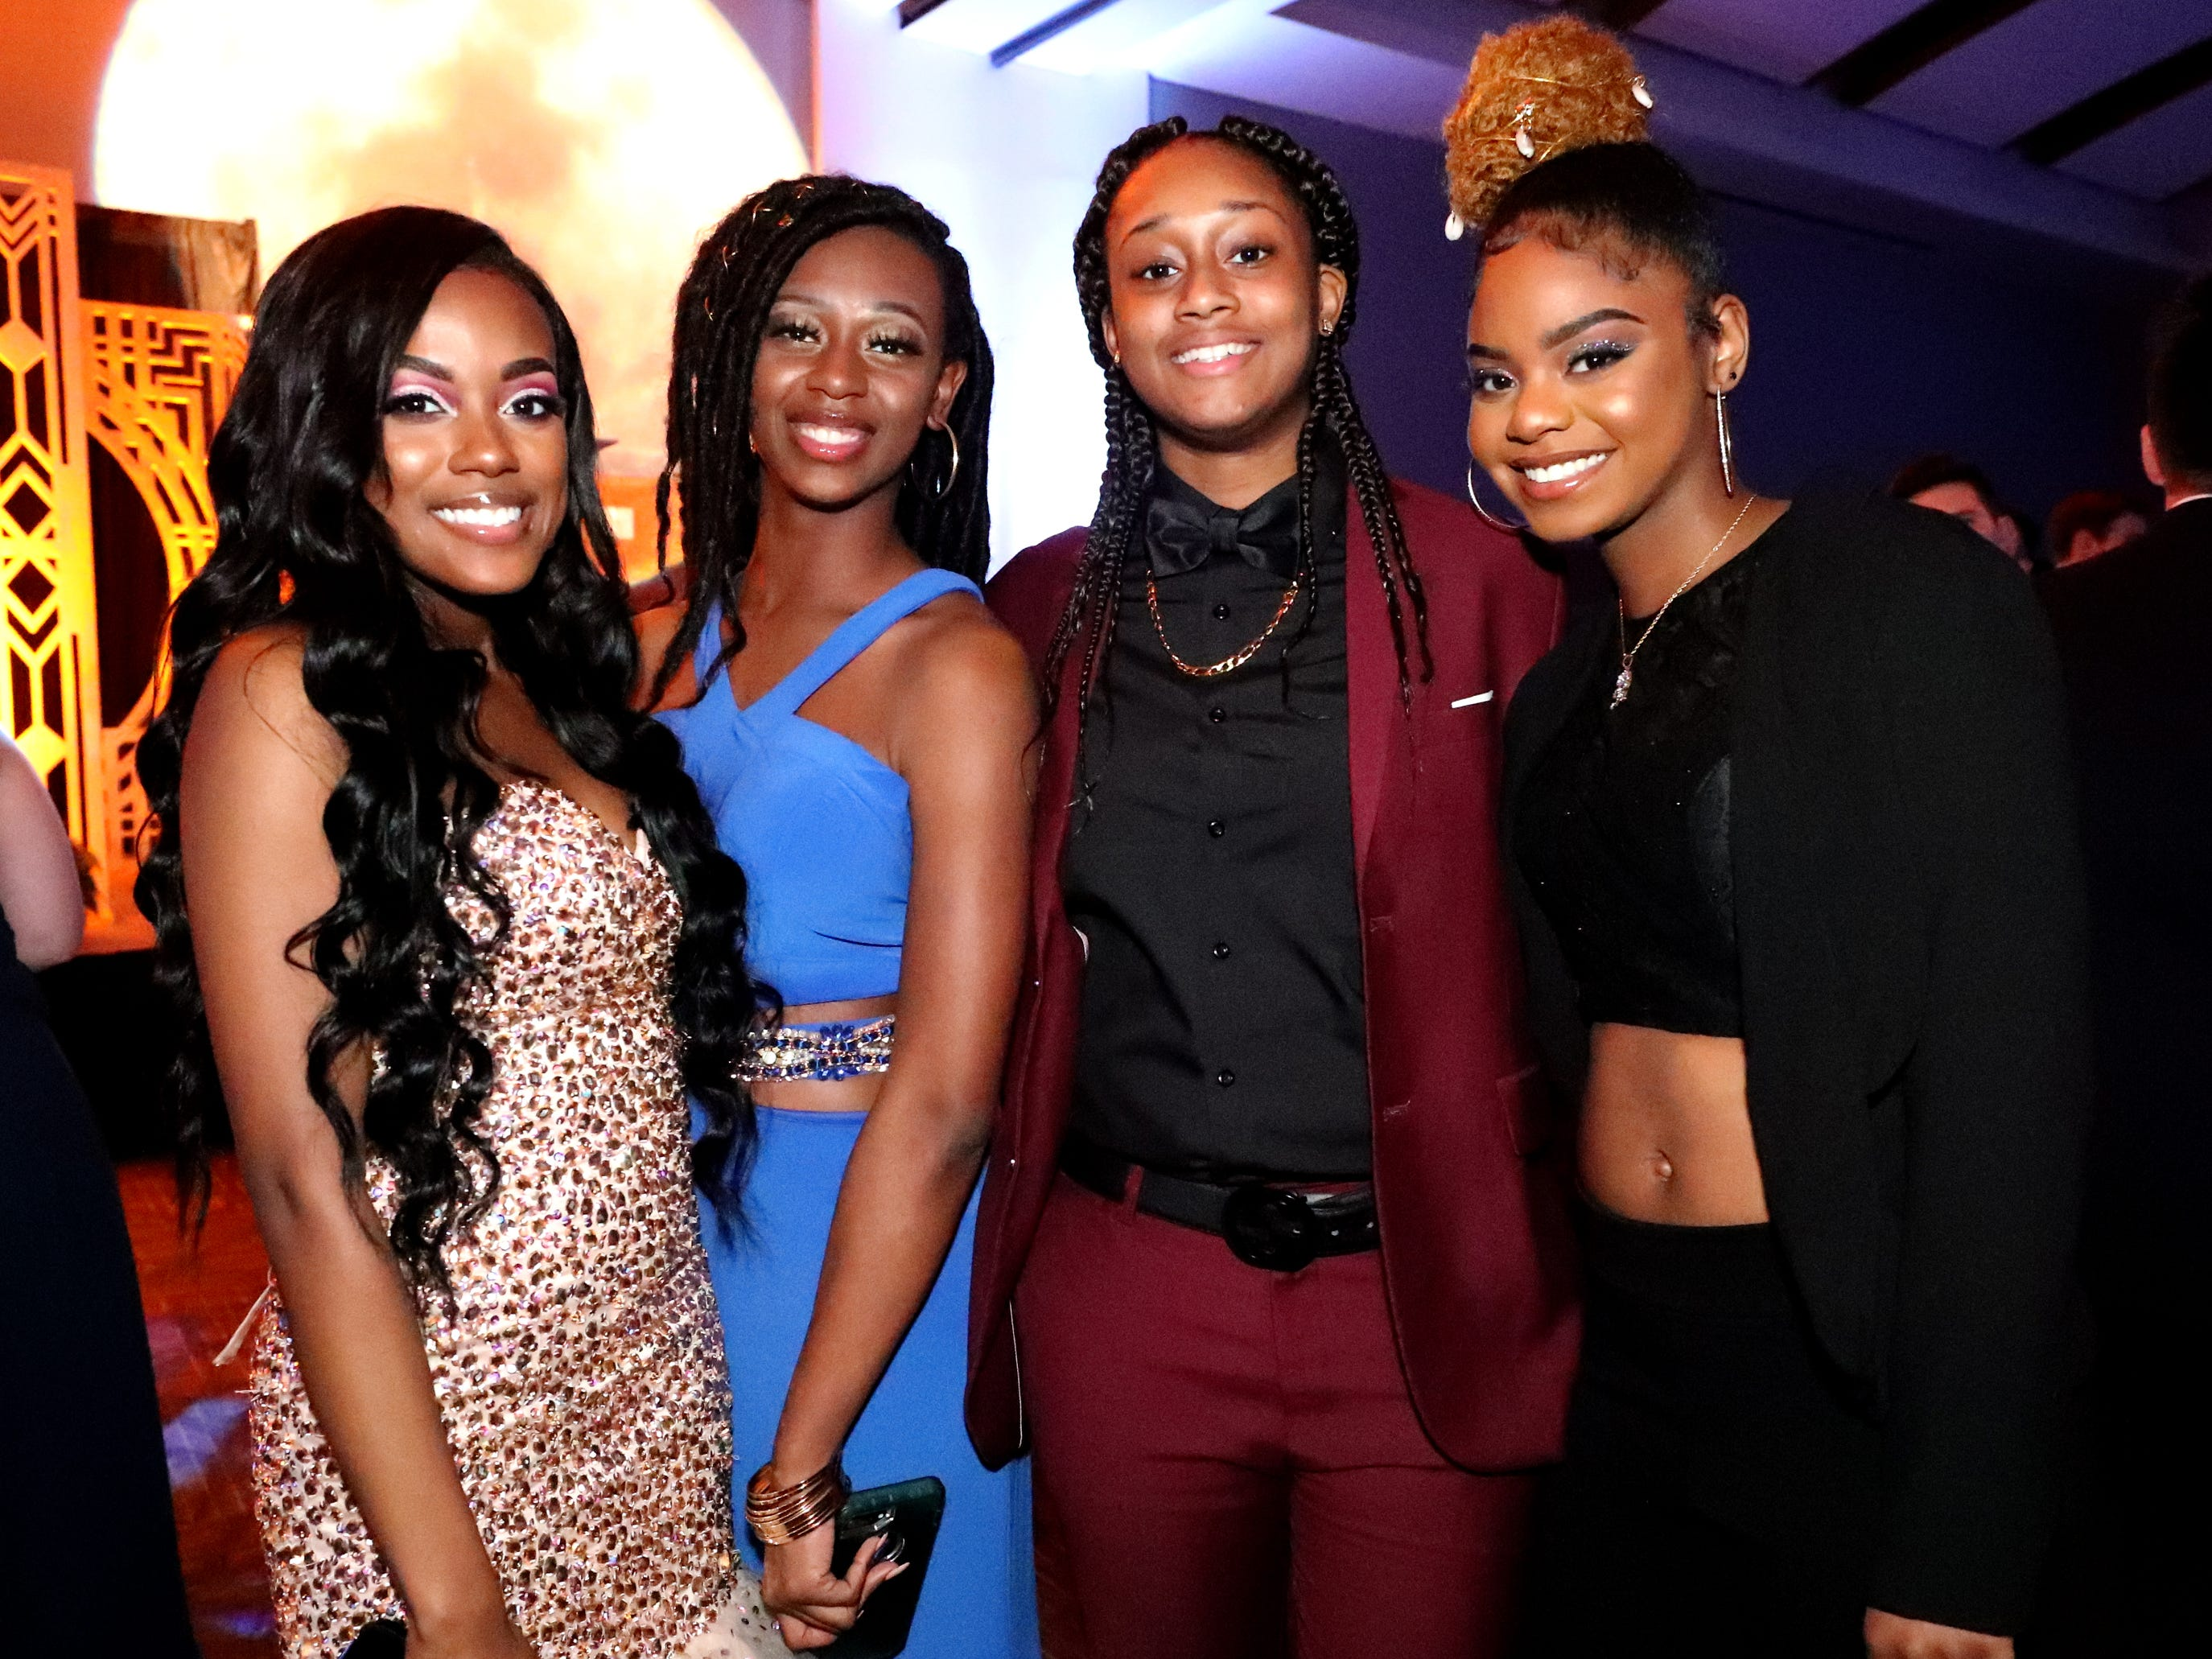 (Left to Right) Kalicia Orr, T'karia Patrick, GeeGee Hollingsworth-Pugh and Jaliyah Carpenter at Blackman's prom on Friday April 12, 2019, at MTSU.